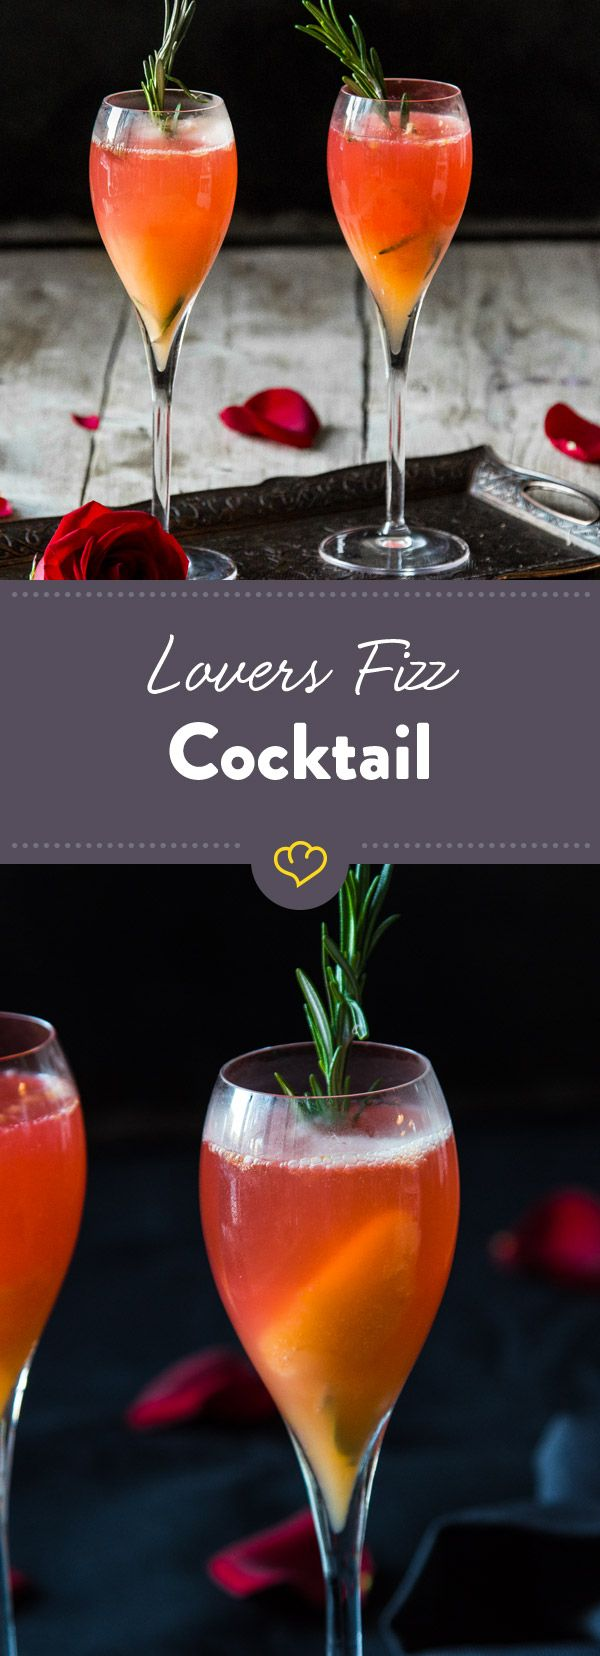 Blood elves cocktail for the love of ray with free